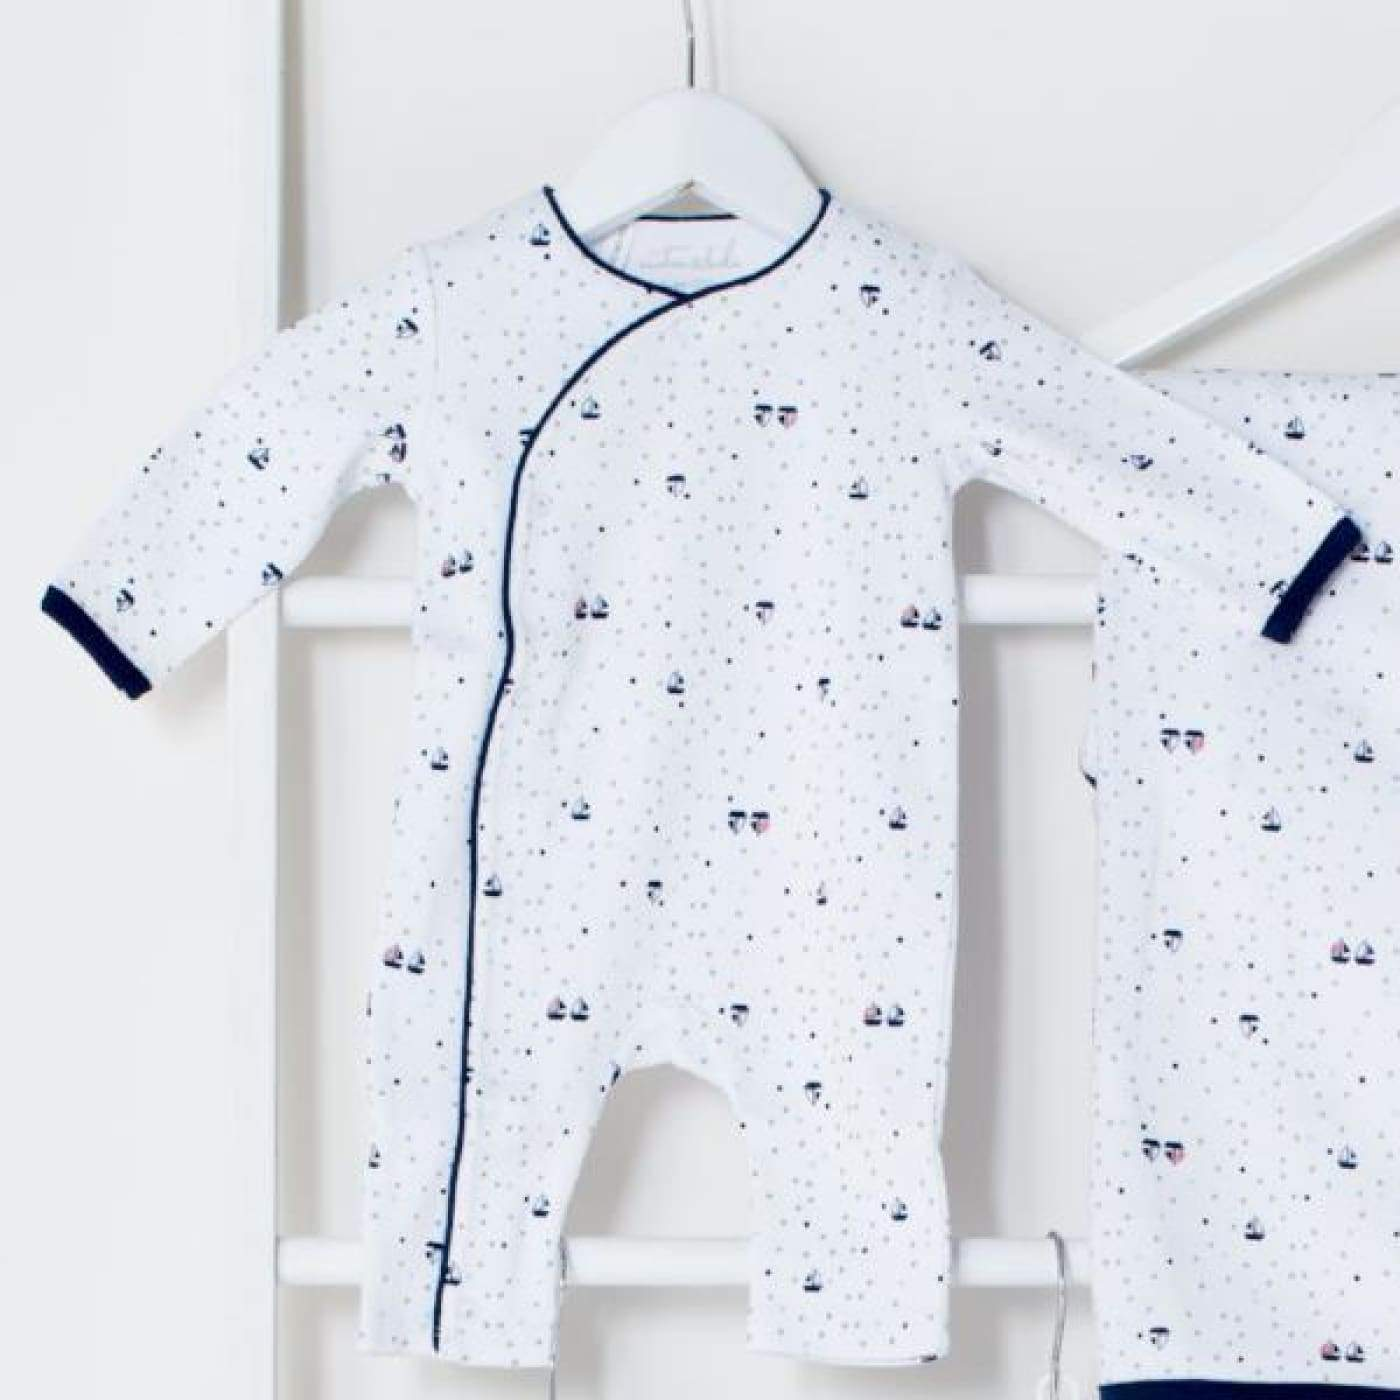 Emotion & Kids Crossover - Yachts Prem 00000 - BABY & TODDLER CLOTHING - BODYSUITS/SETS/MIX-MATCH